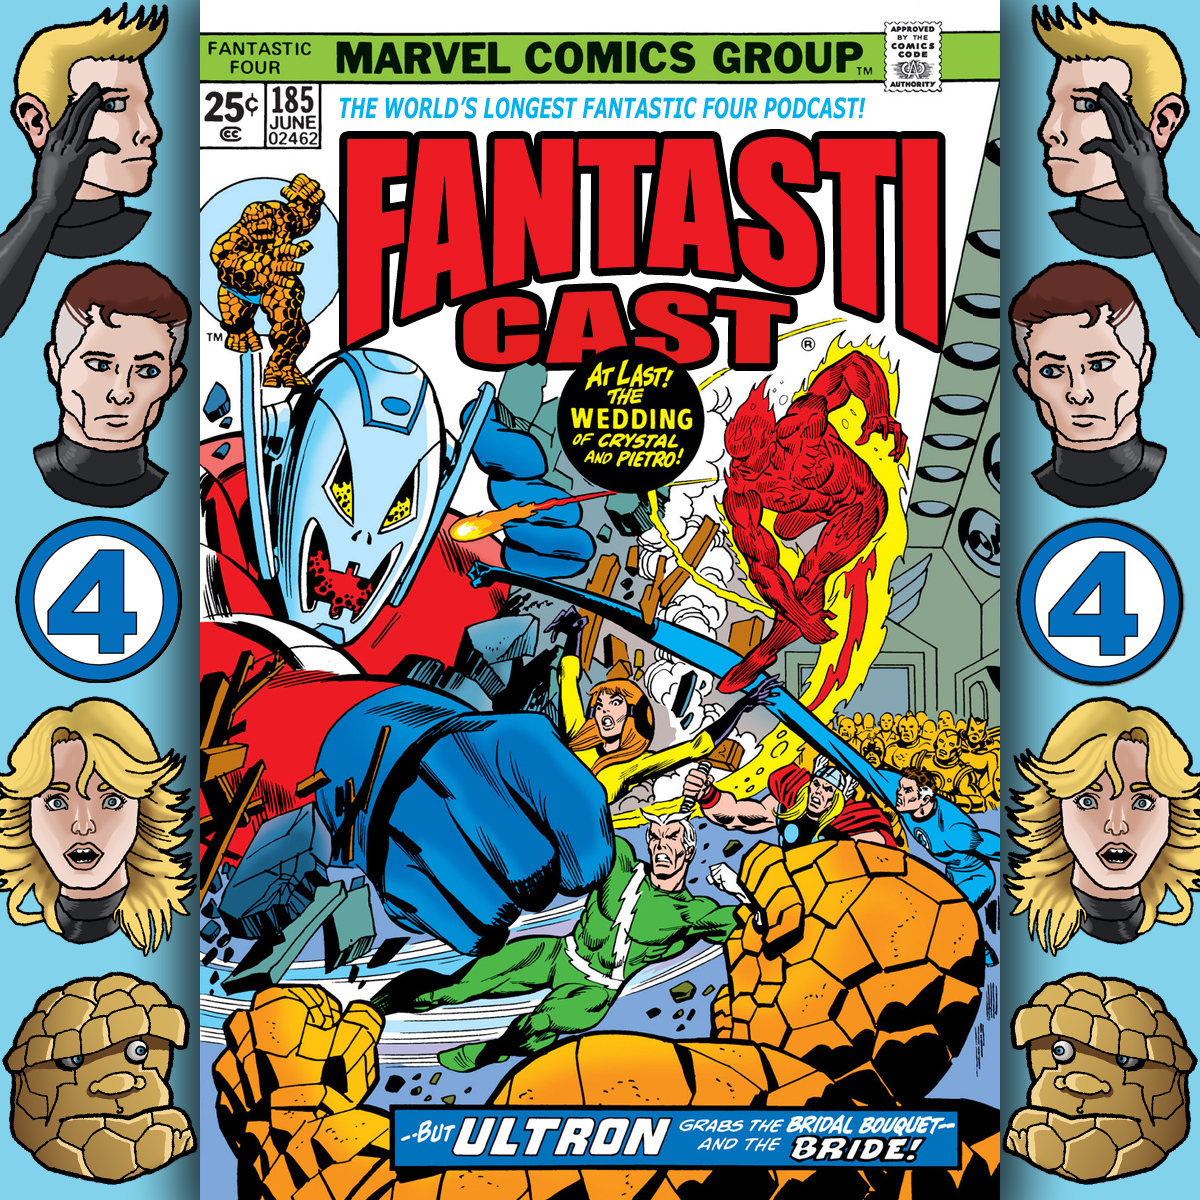 Episode 186: Fantastic Four #150 - Ultron-7: He'll Rule The World